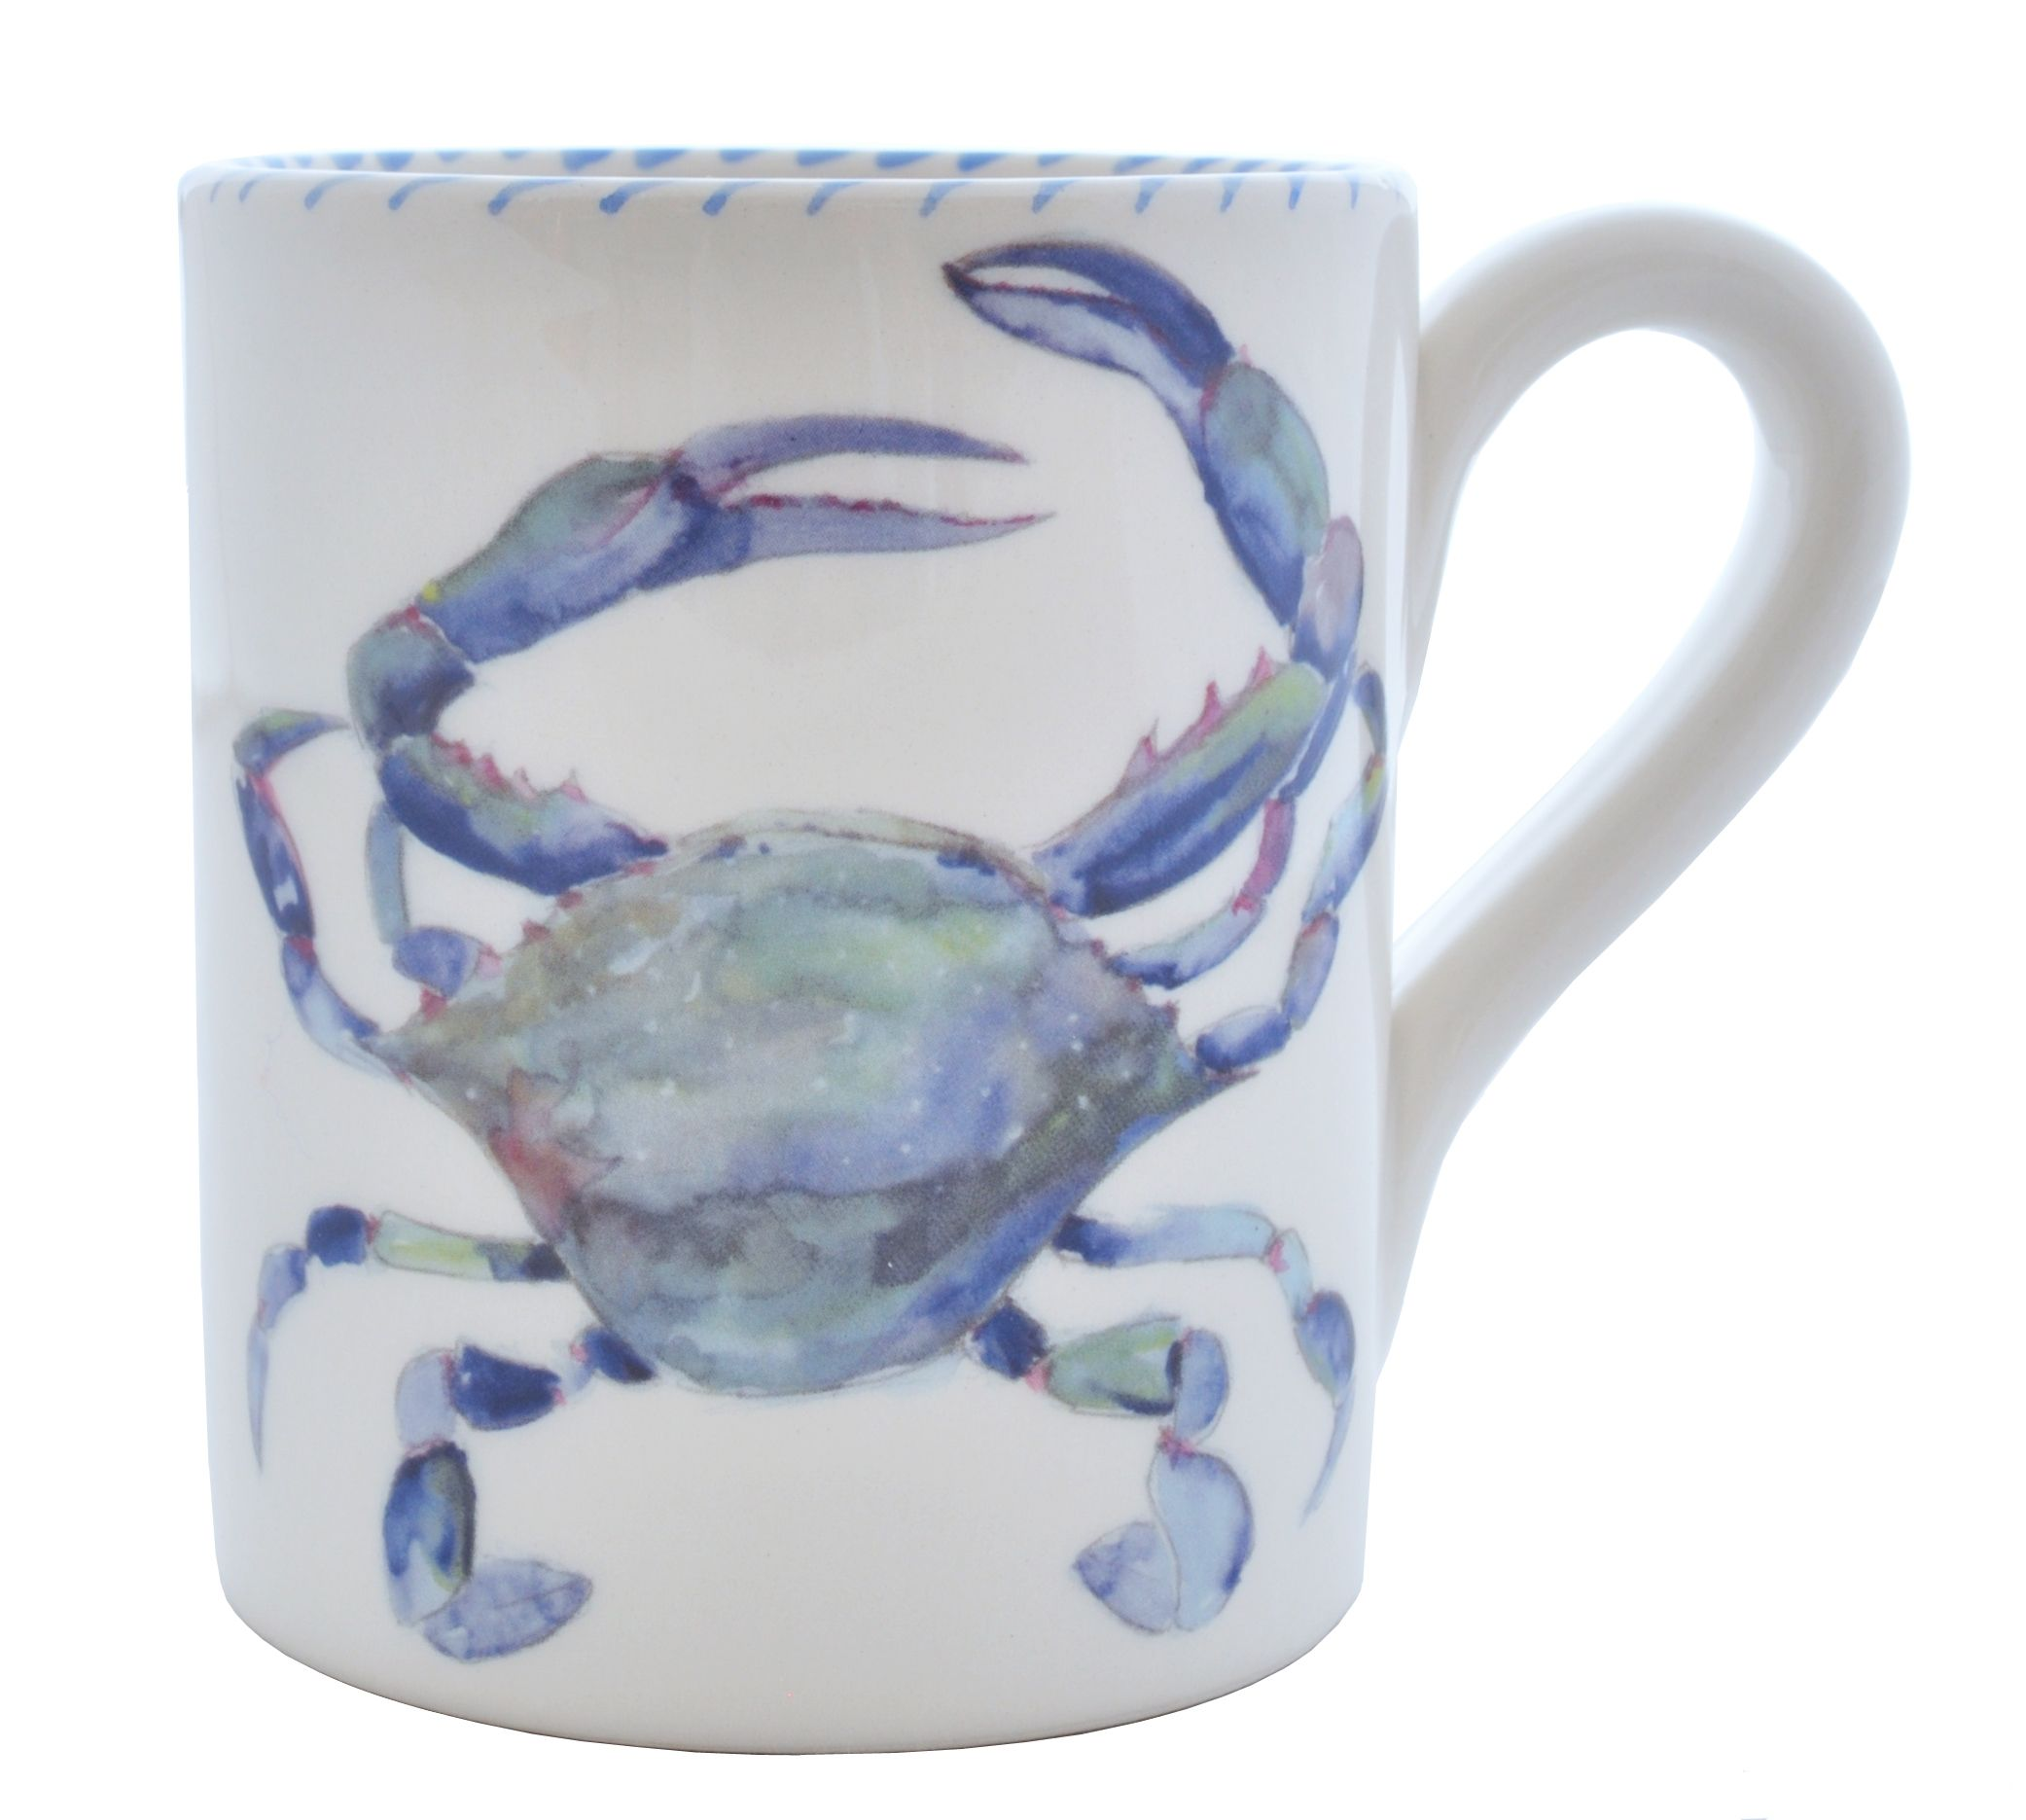 Blue Crab Dinnerware Collection Crab  sc 1 st  tagranks.com & Cool Crab Dinnerware Gallery - Best Image Engine - tagranks.com